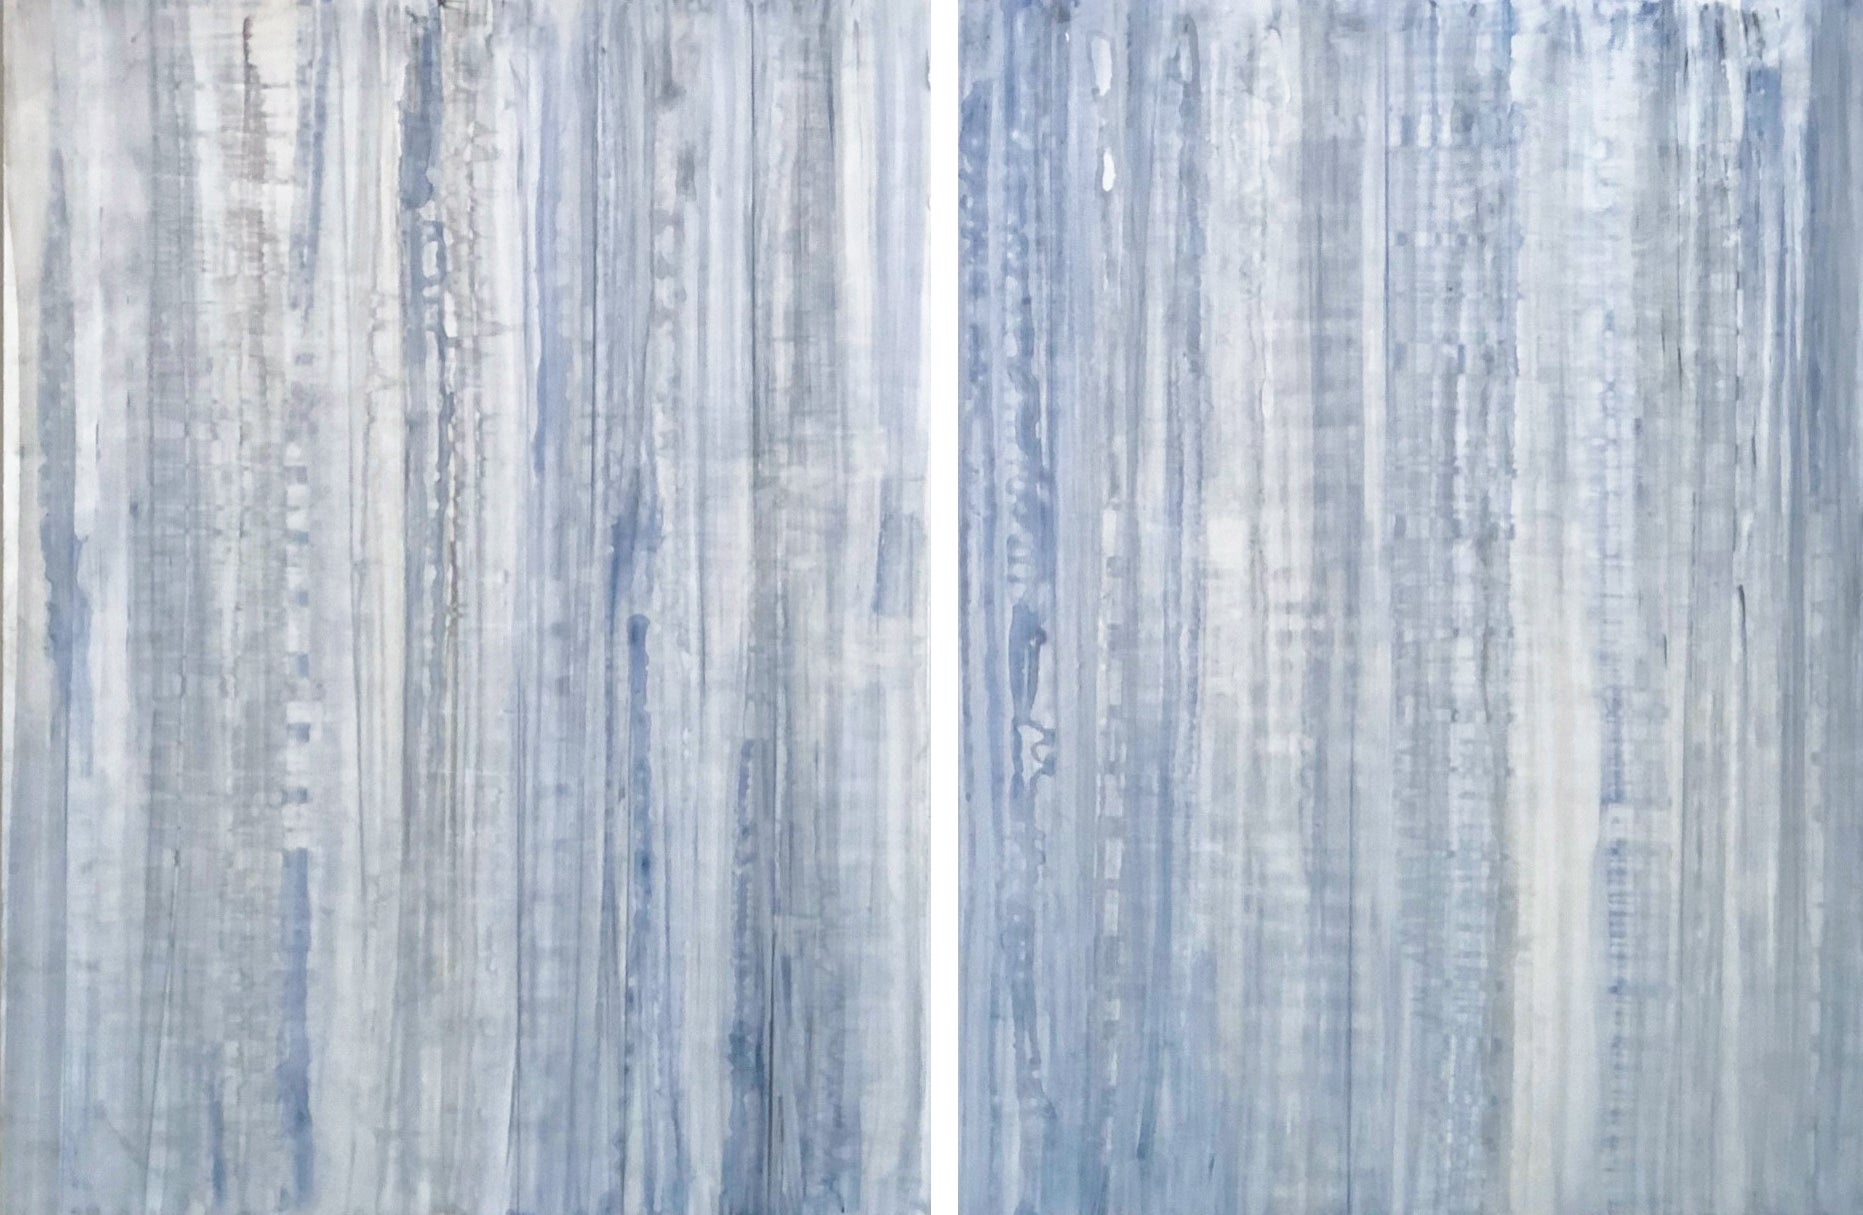 Minimalist Abstract Color Field Painting in Light Blue, White & Grey (C20-9)